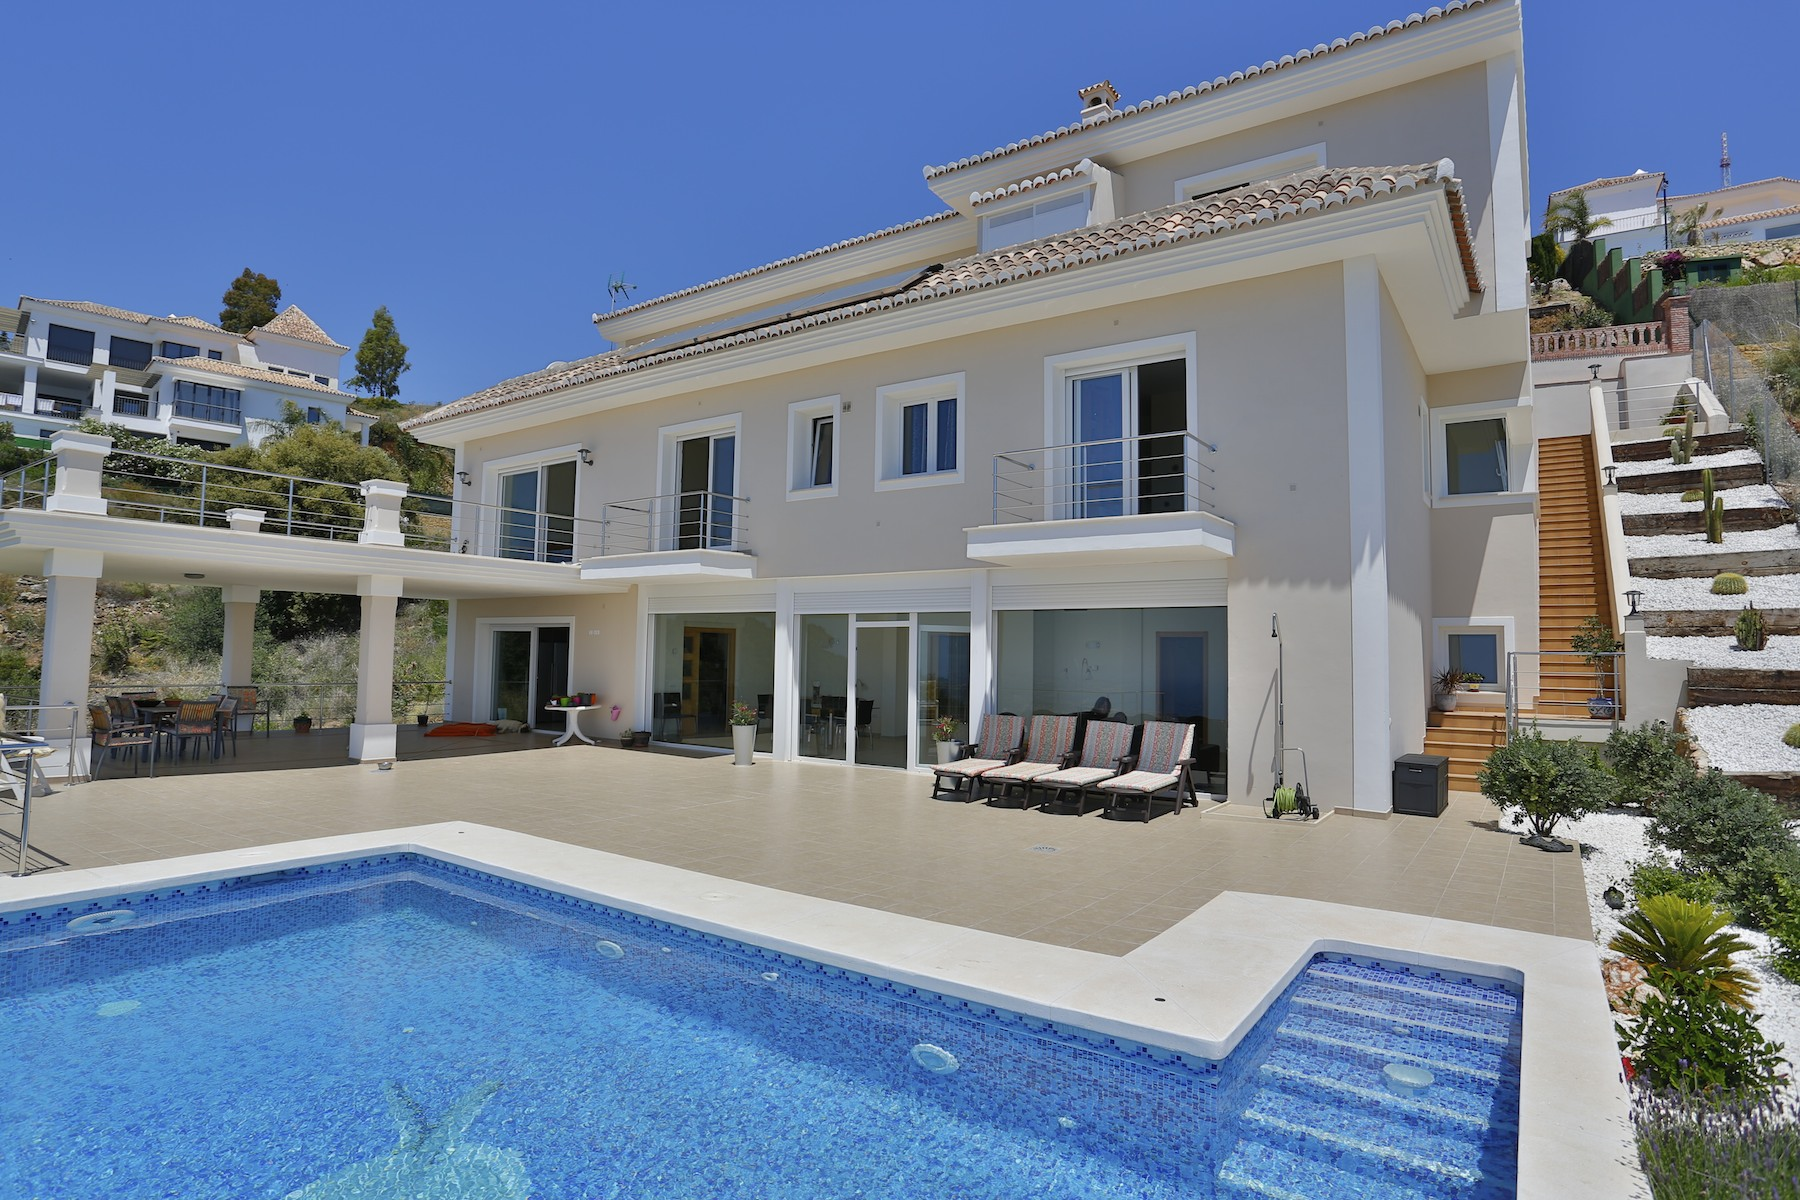 Single Family Home for Sale at Modern Style villa Altos de Los Monteros Marbella, Costa Del Sol, 29600 Spain